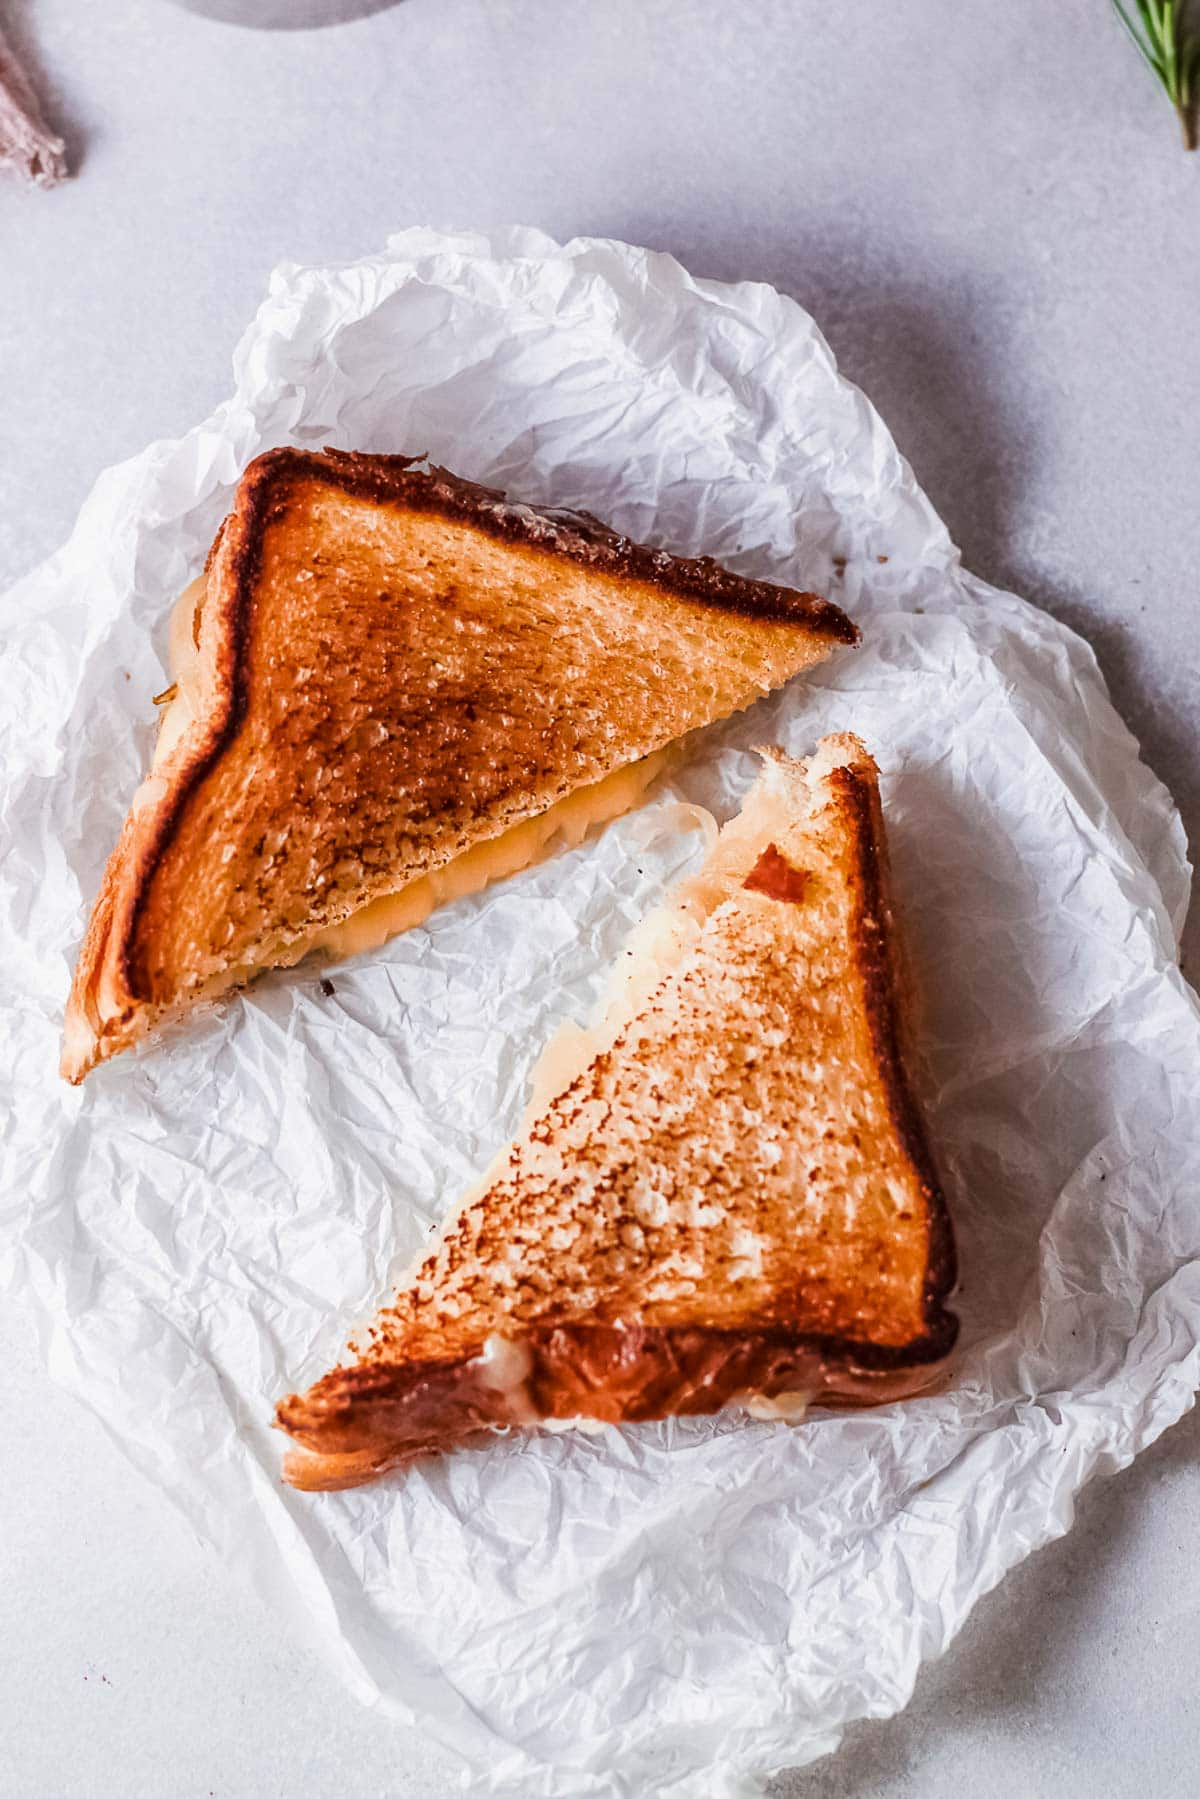 French onion grilled cheese sandwiches halves overhead